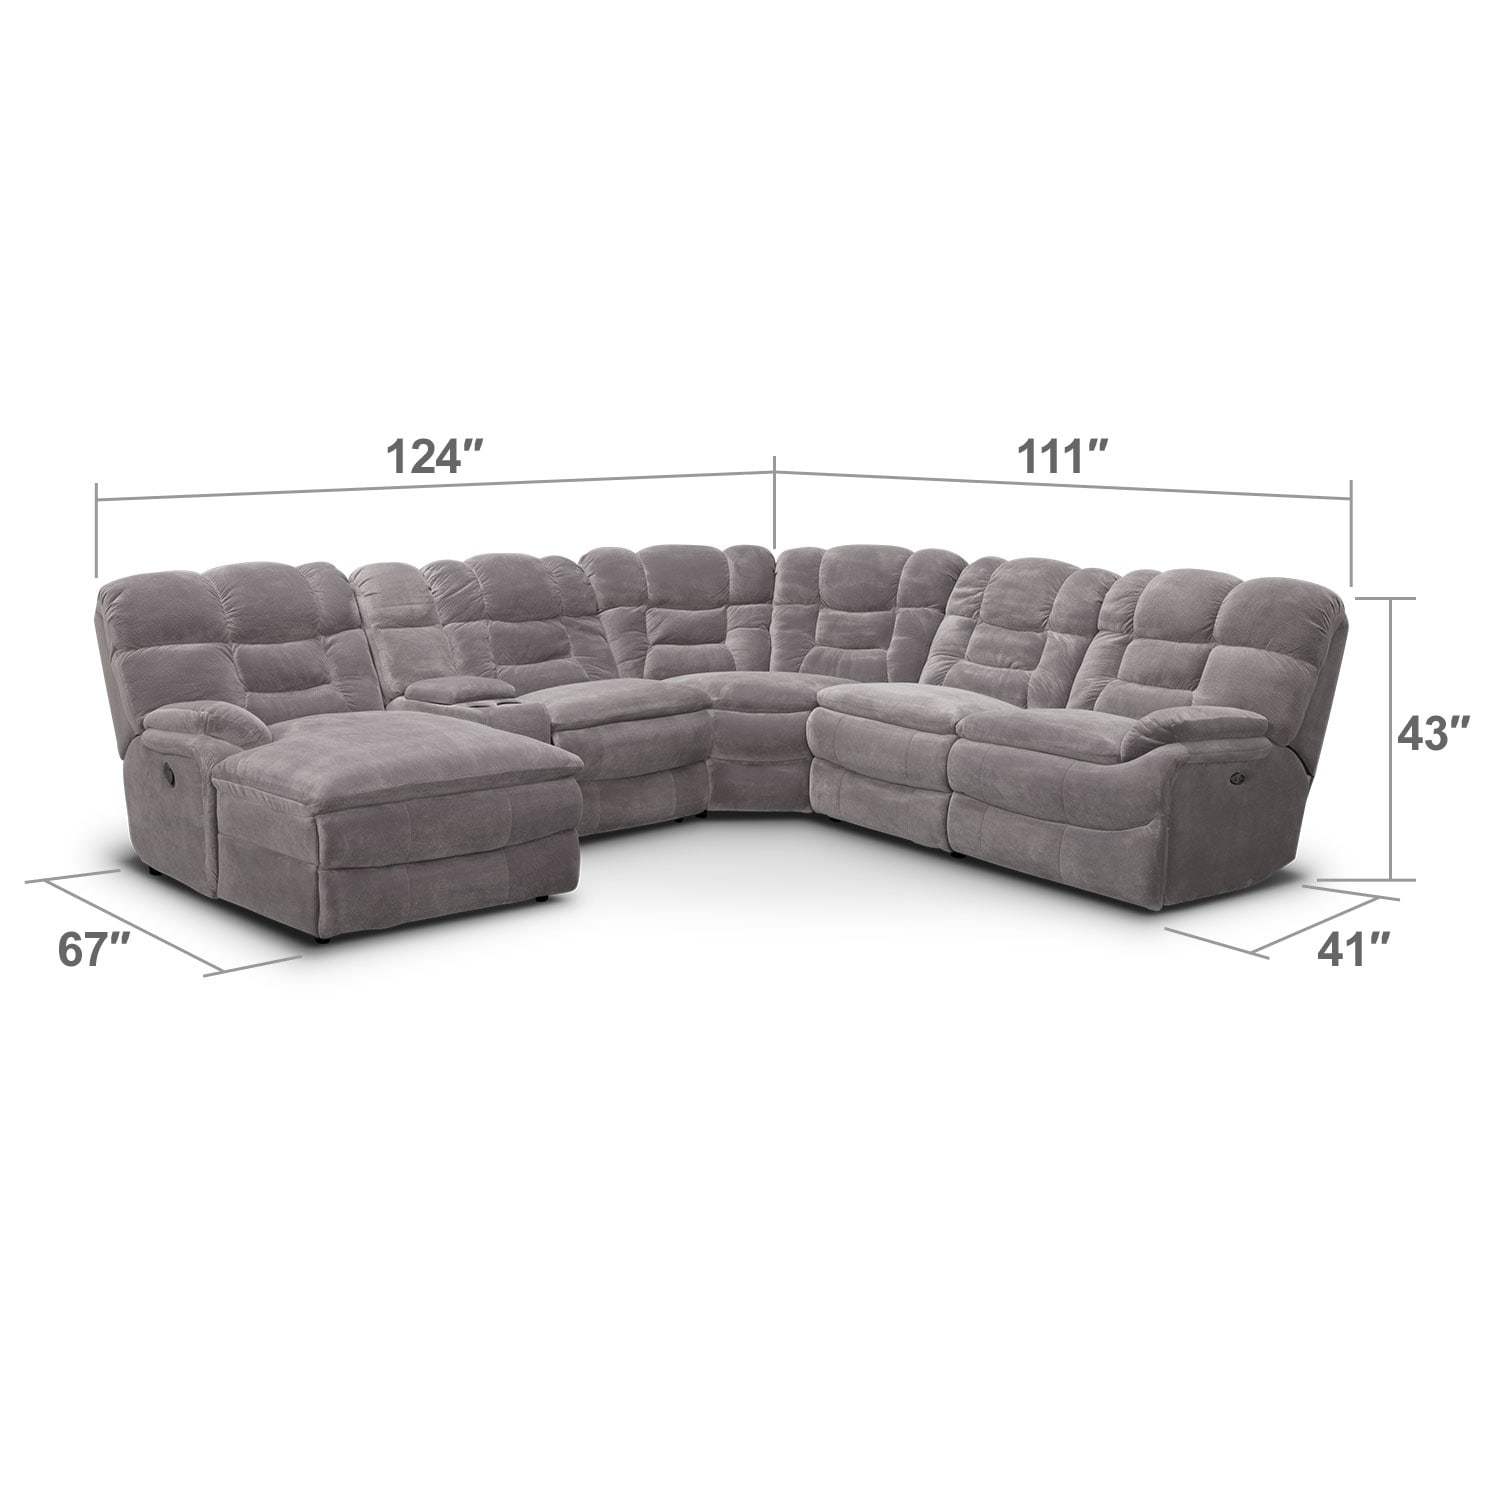 Living Room Furniture - Big Softie II 6 Pc. Power Reclining Sectional (Reverse)